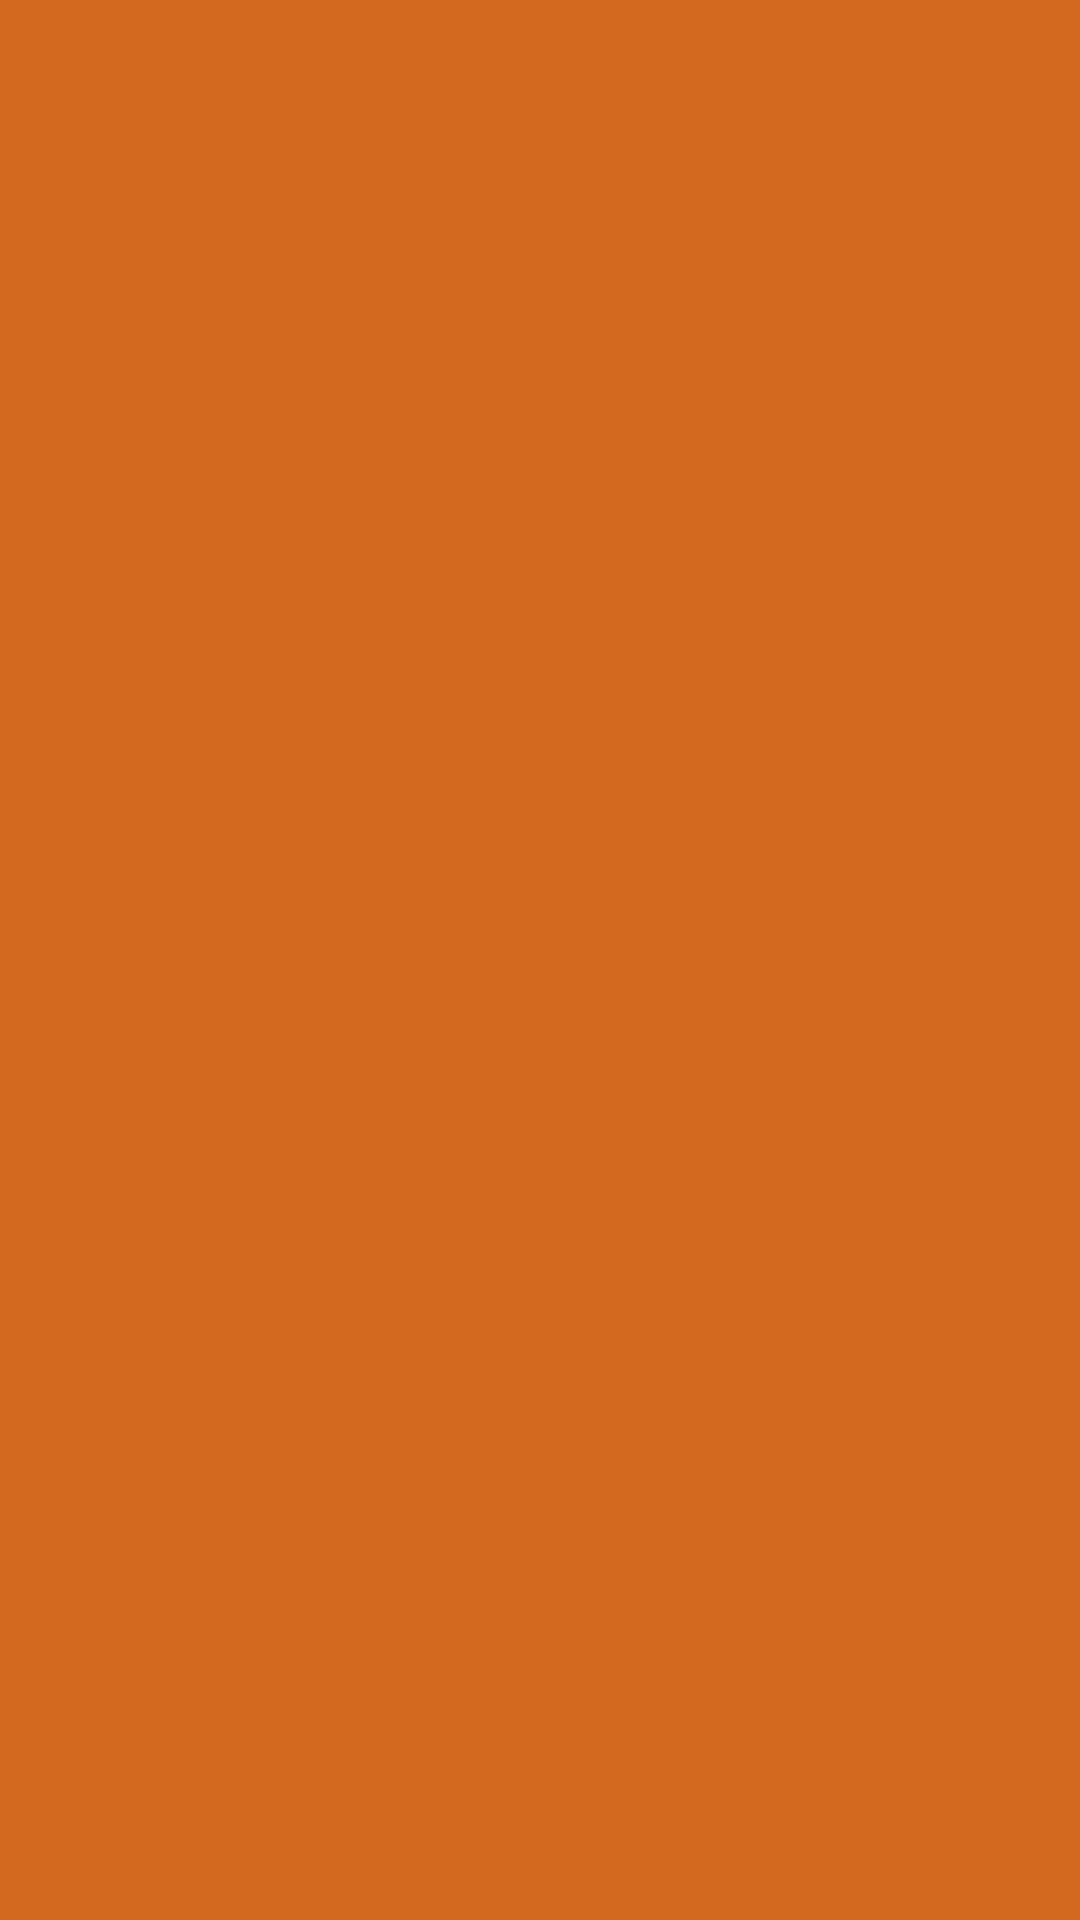 1080x1920 Cinnamon Solid Color Background